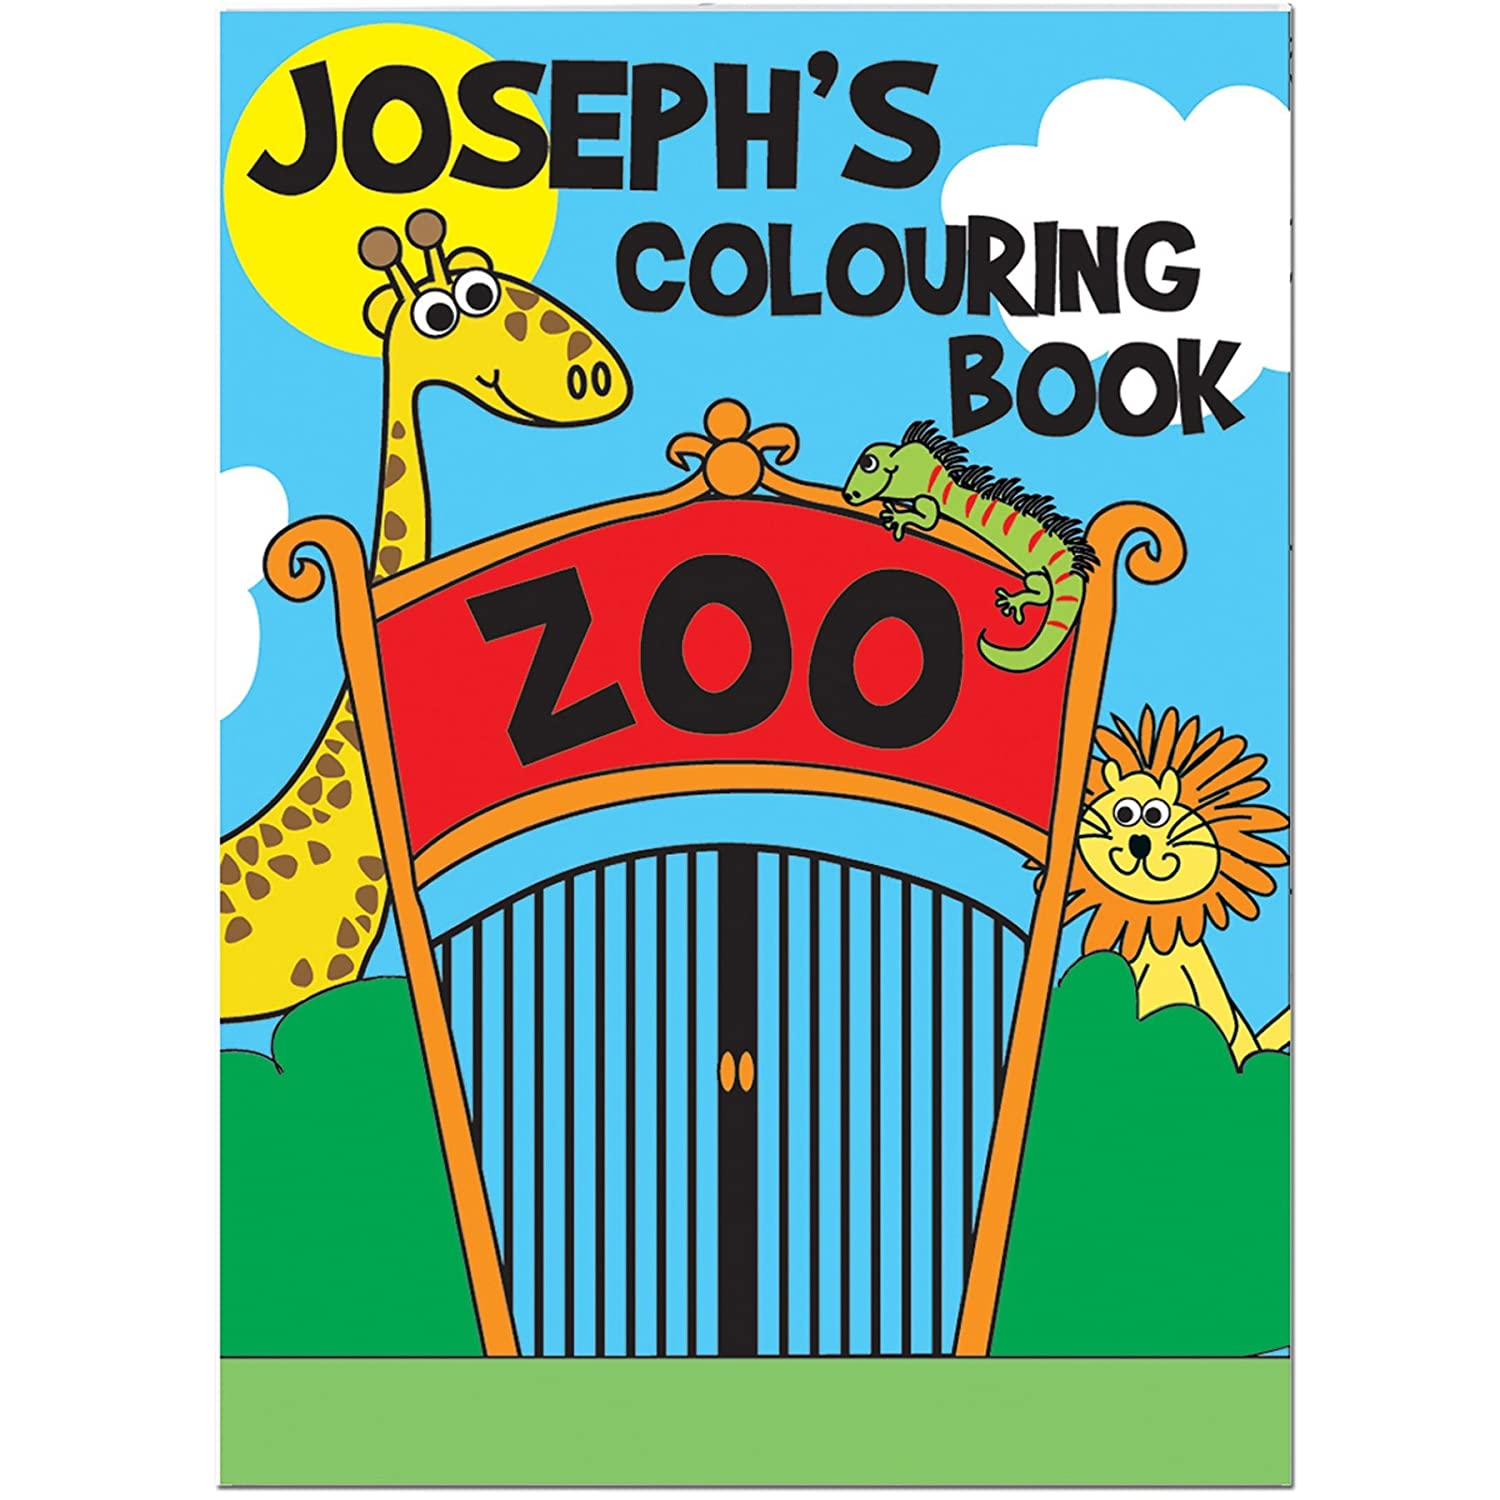 Personalised Colouring Books - Zoo B007I01TZ0 |